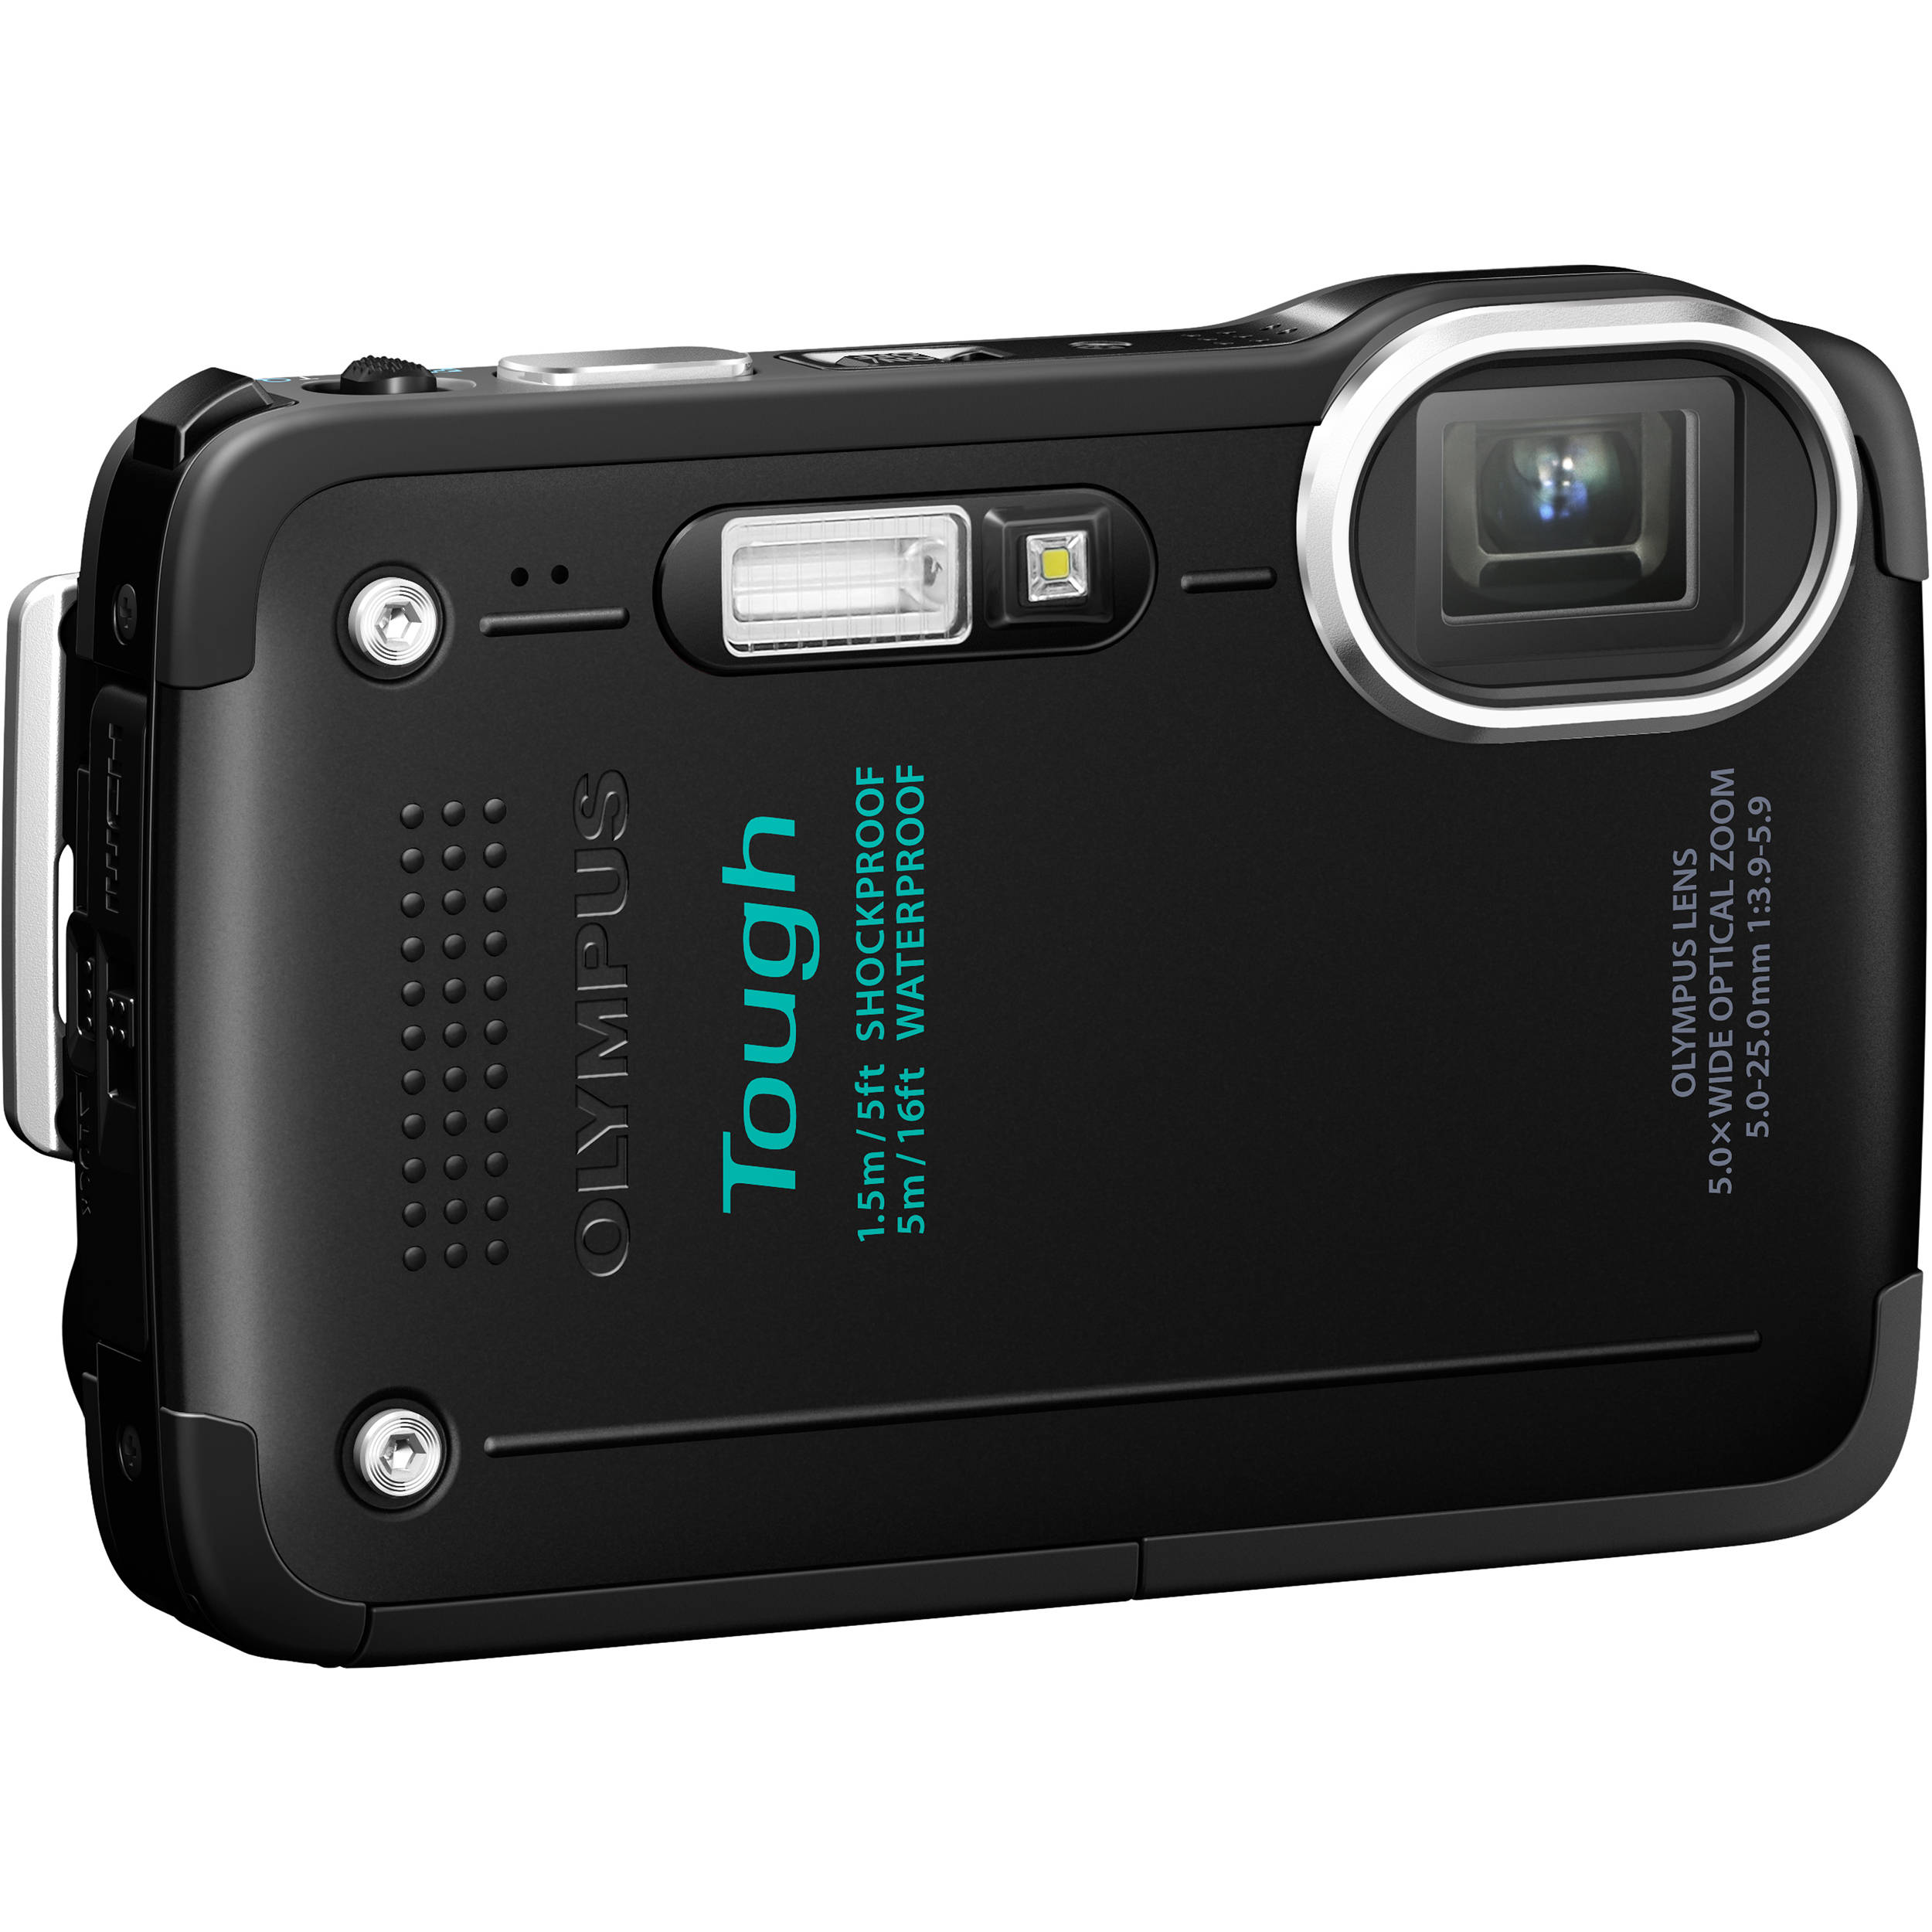 Olympus TG-630 iHS Digital Camera (Black) V104110BU000 B&H ...